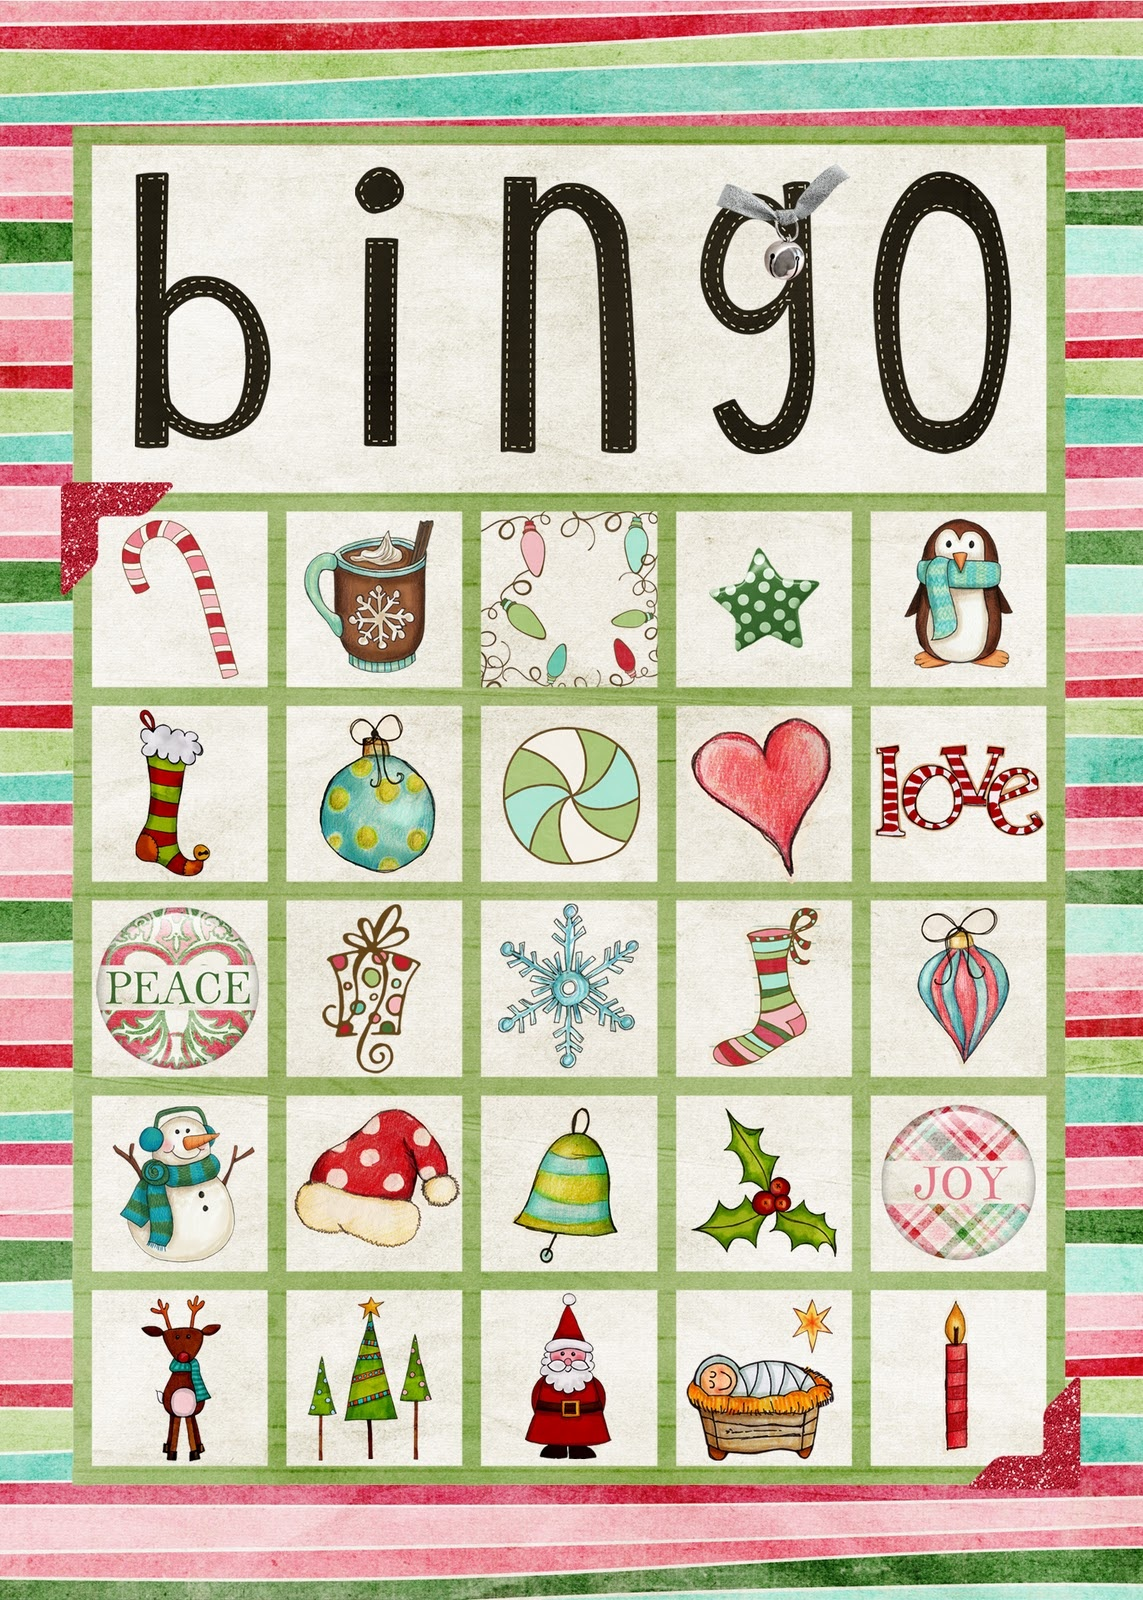 Free Printable Christmas Bingo Cards For Large Groups - Printable Cards - Free Printable Bingo Cards For Large Groups